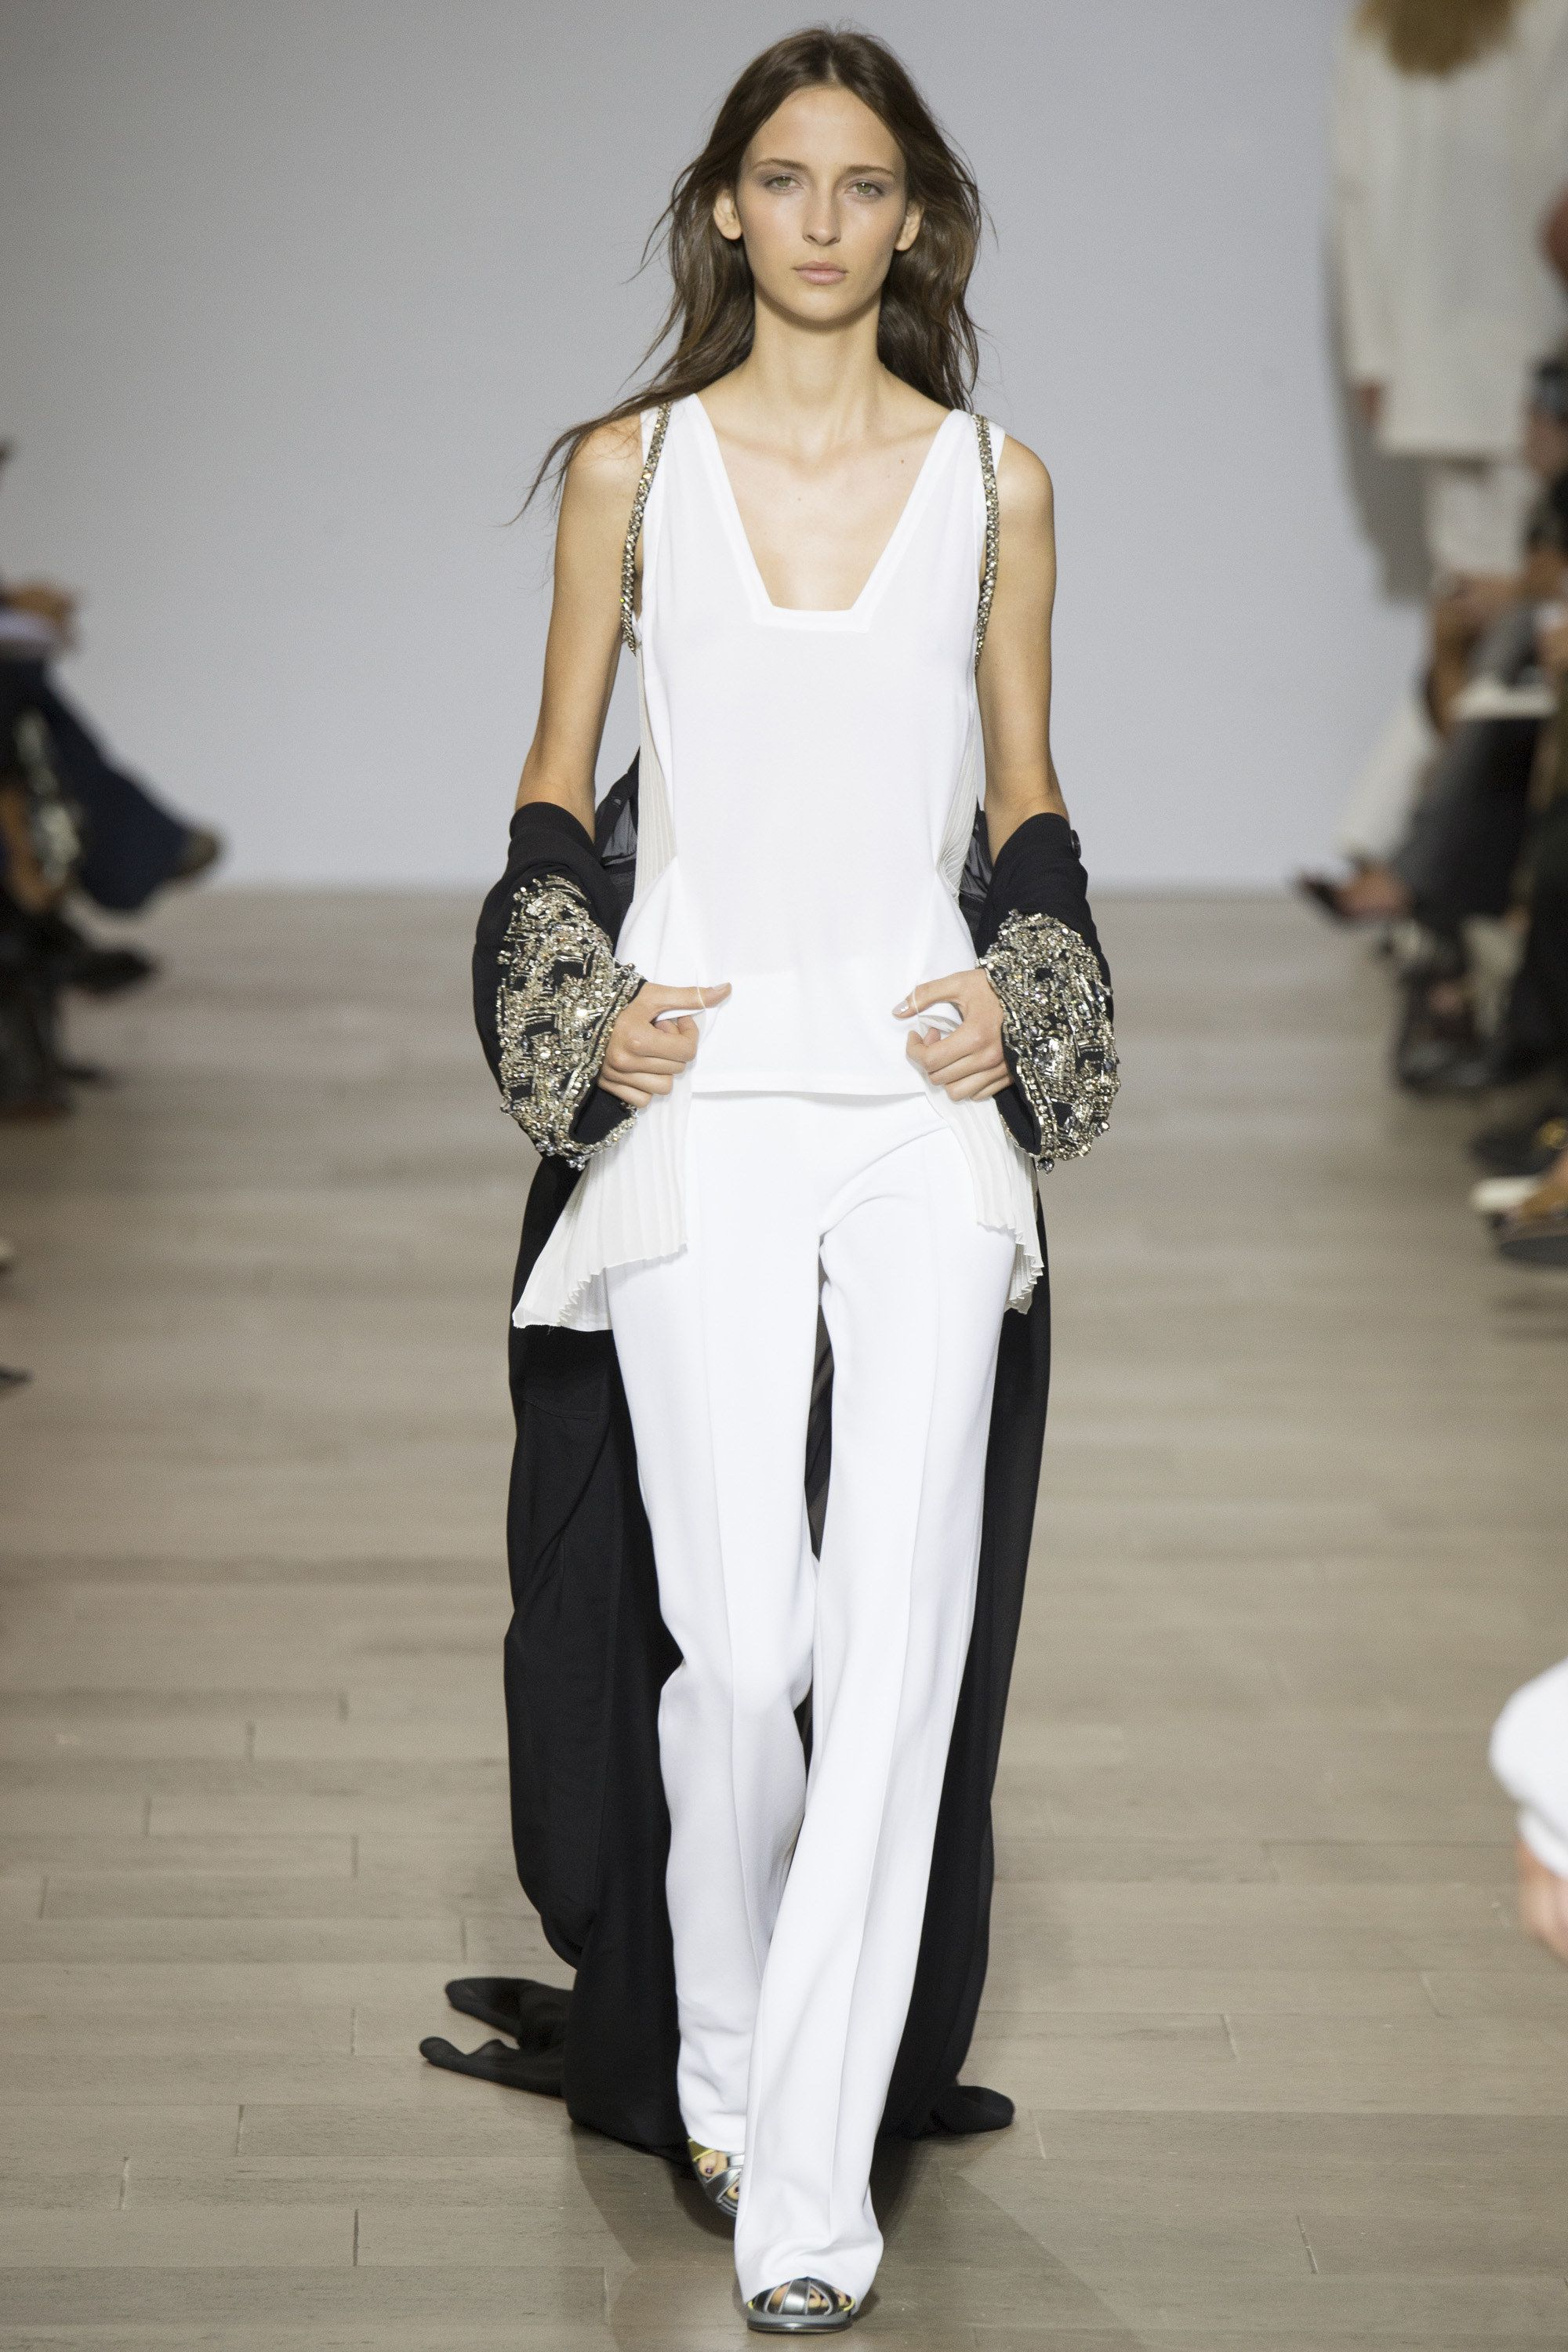 Antonio Berardi Spring 2016 Ready-to-Wear Fashion Show